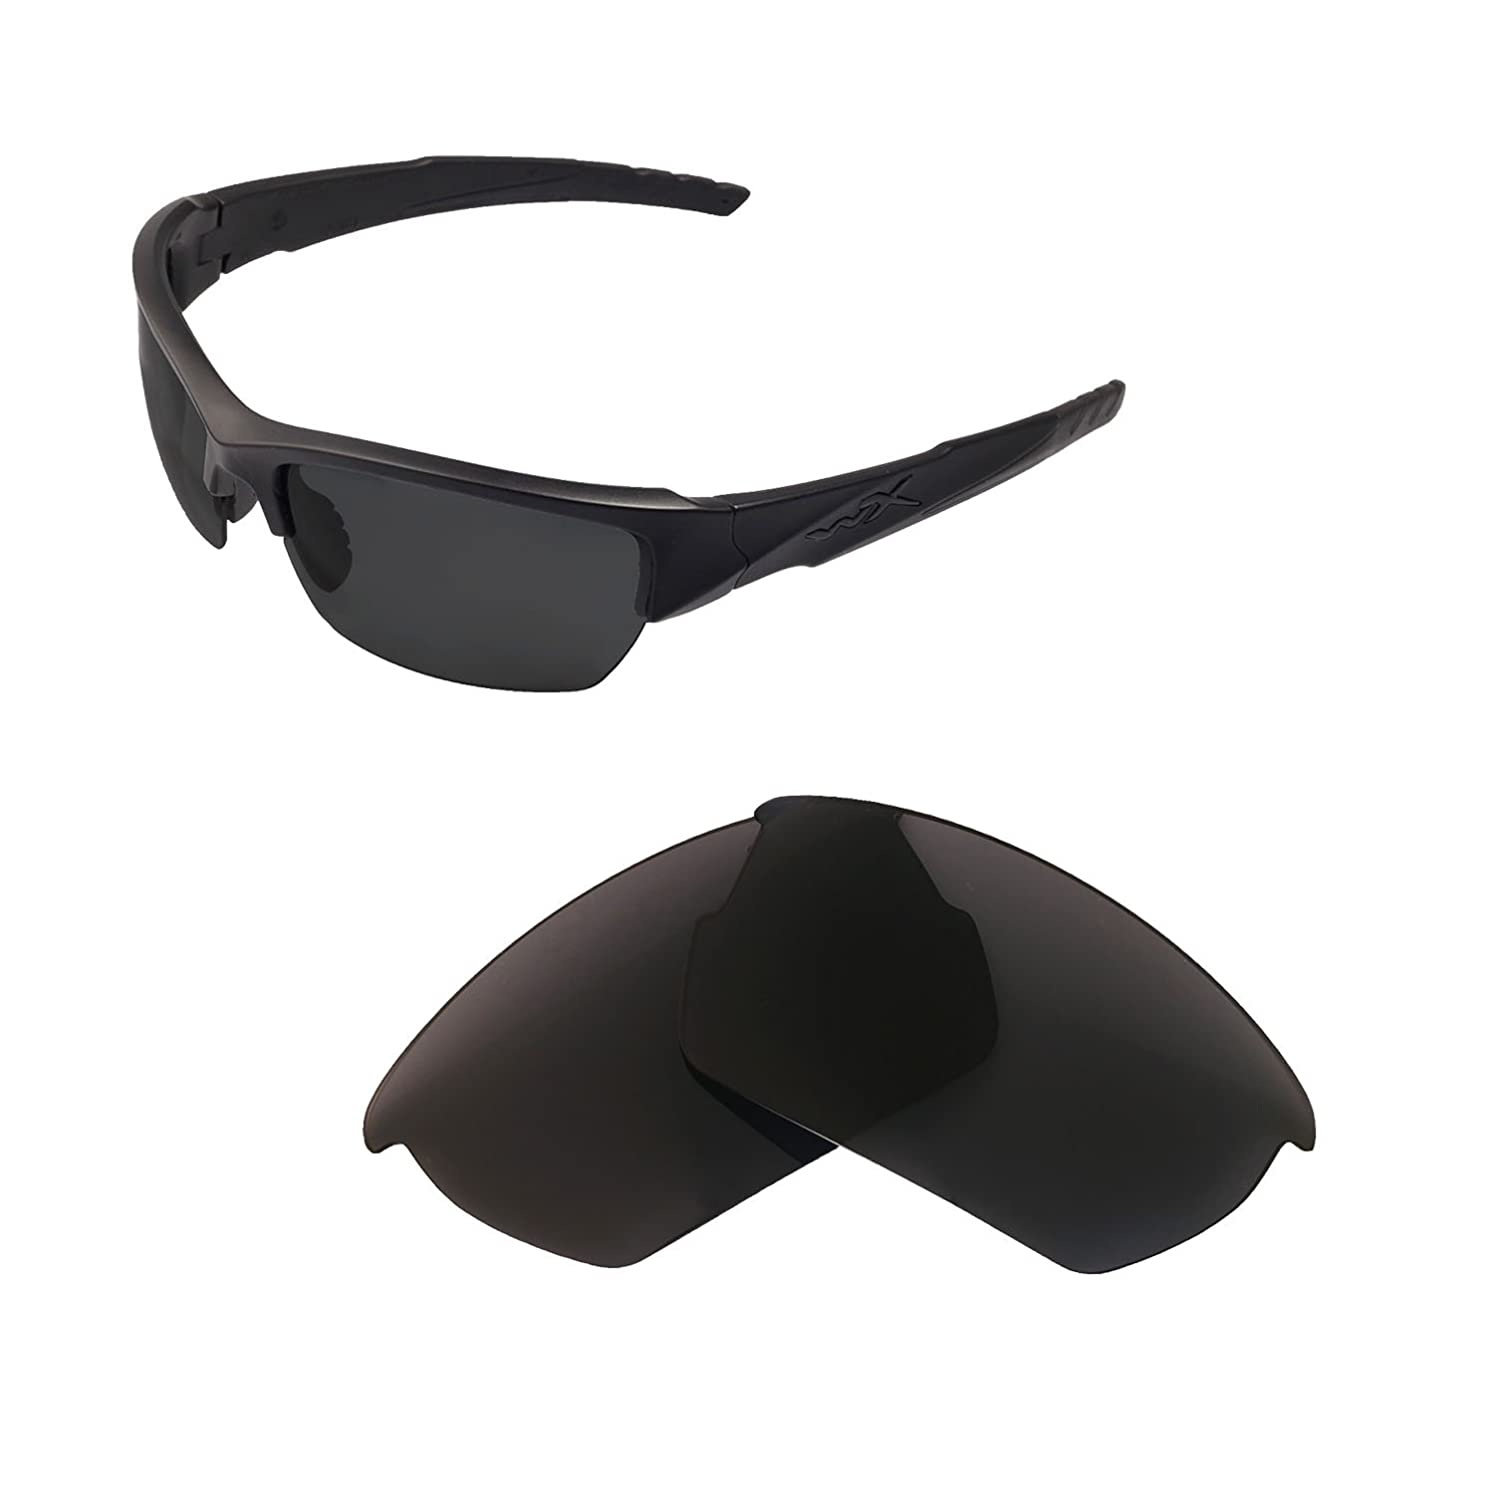 Walleva Replacement Lenses Wiley X Valor Sunglasses - Multiple Options Available